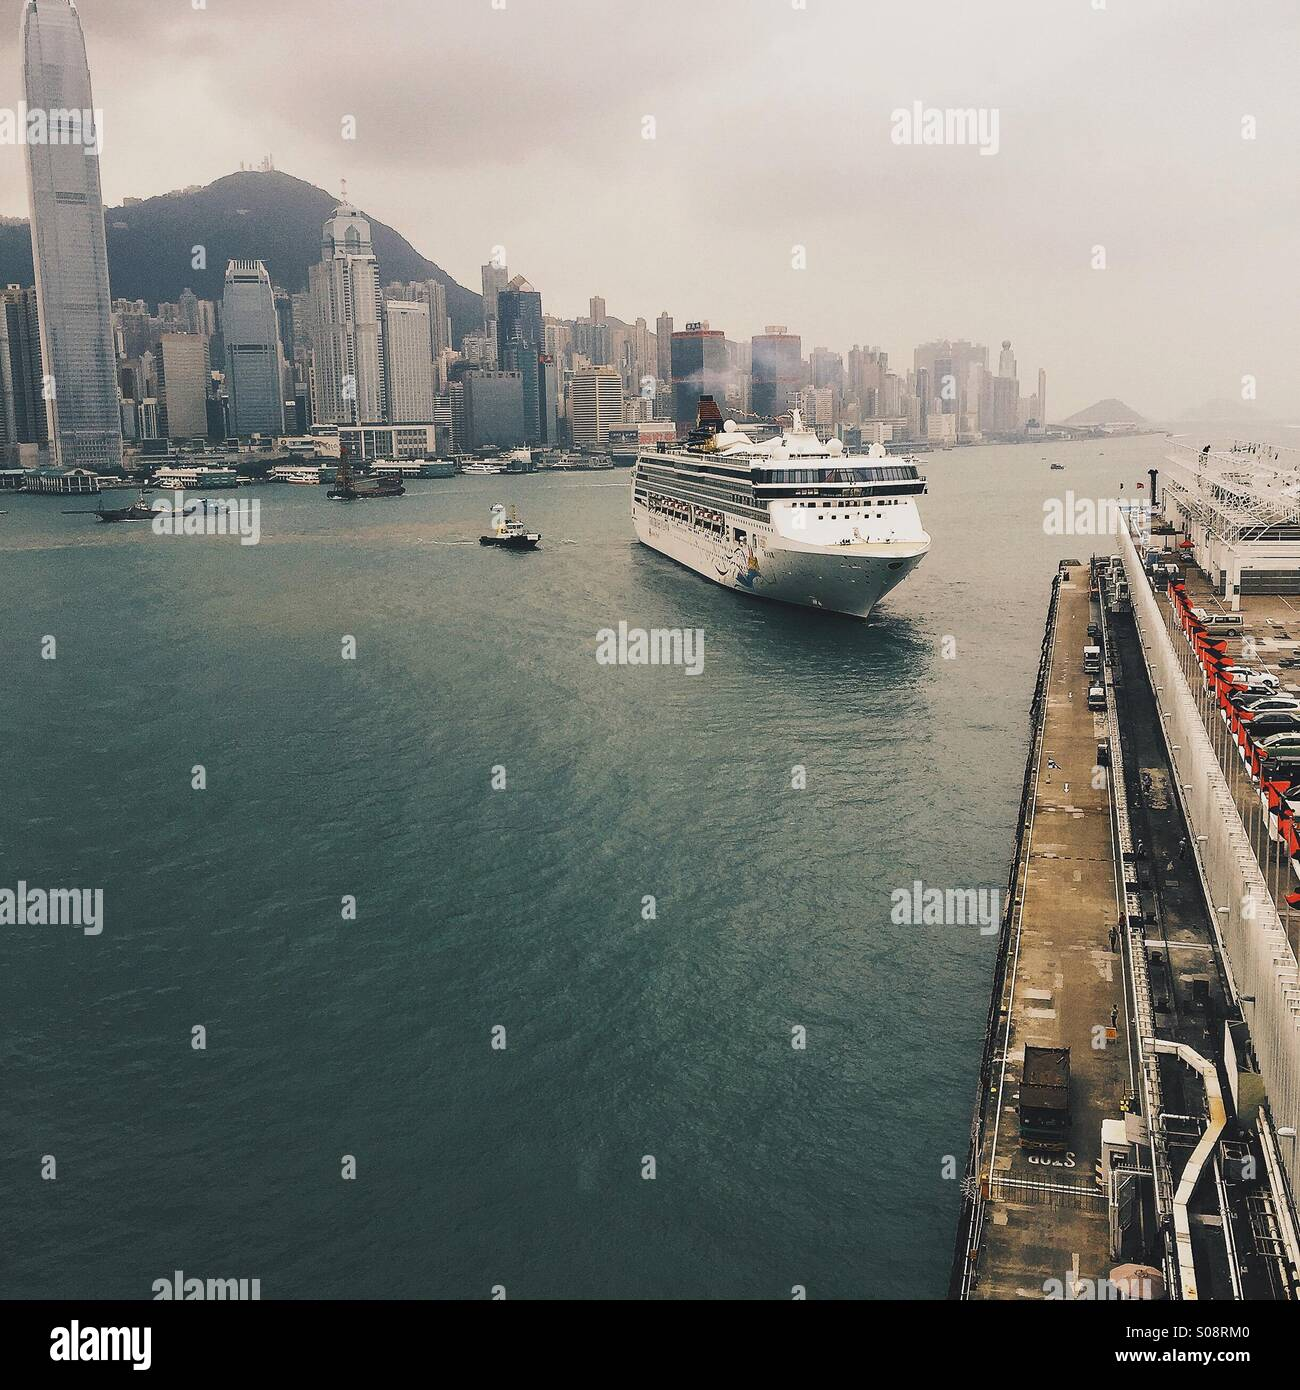 Hongkong victoria harbour with ships - Stock Image